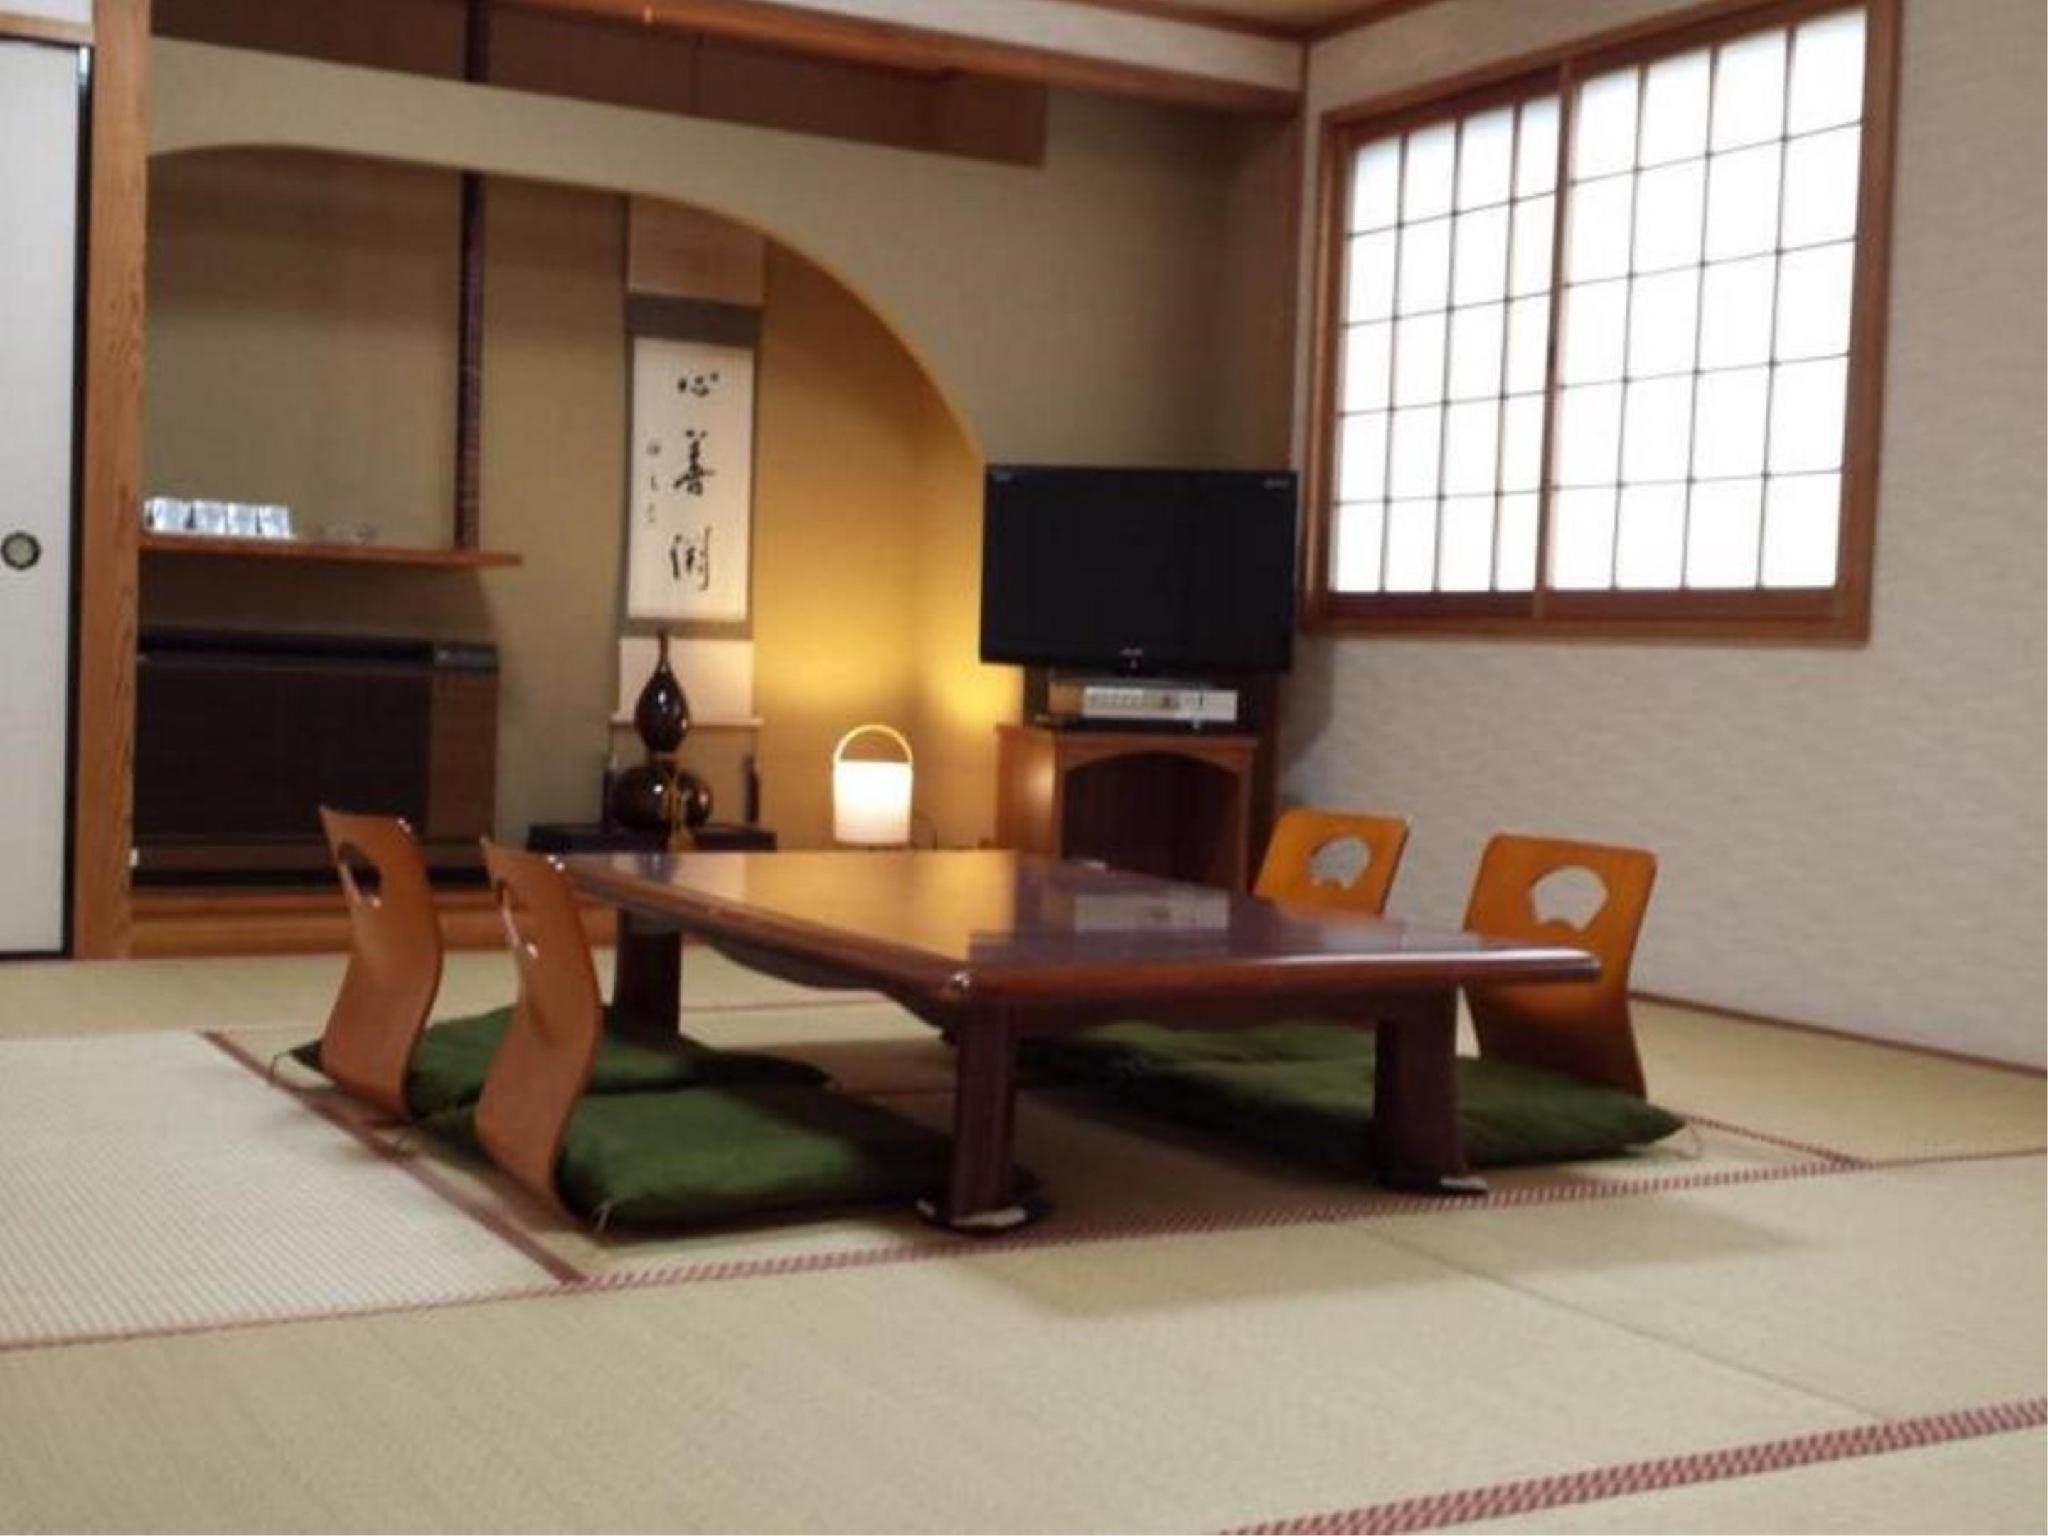 다다미 객실(본관/특별실) (Special Japanese-style Room (Main Building))